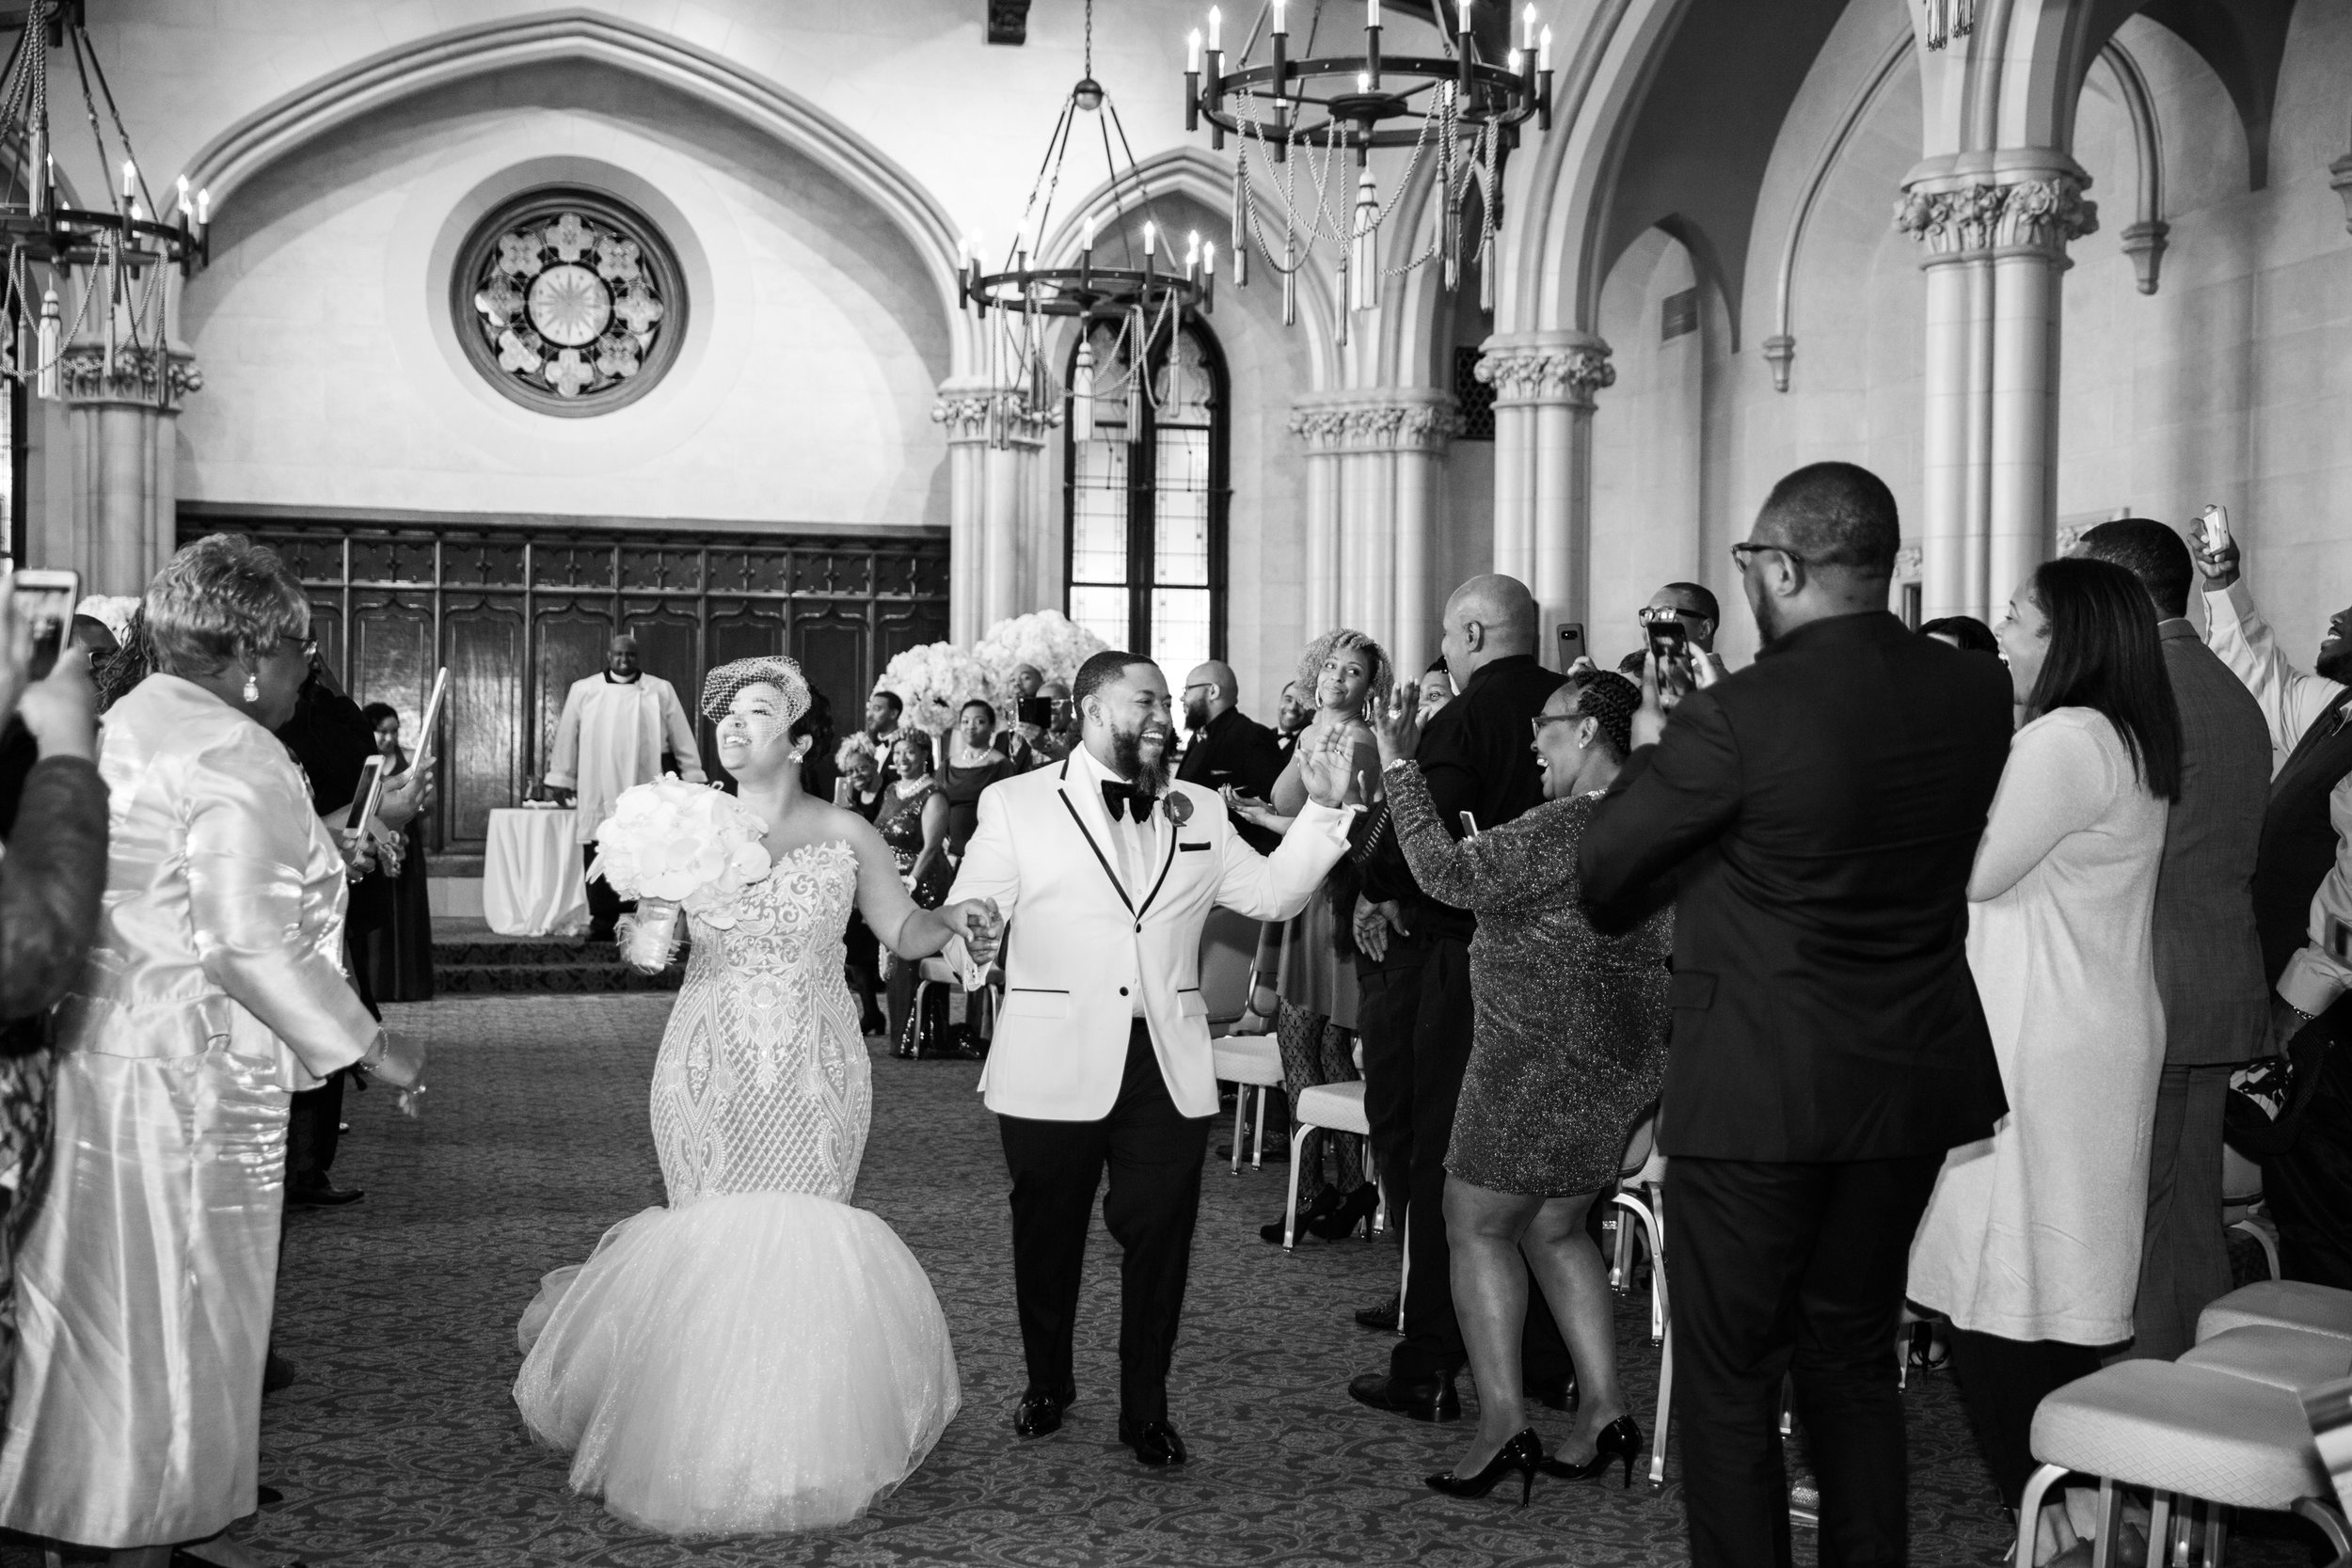 Best Classic Black Bride at The Grand Baltimore Maryland Husband and Wife Wedding Photographers Megapixels Media (51 of 98).jpg